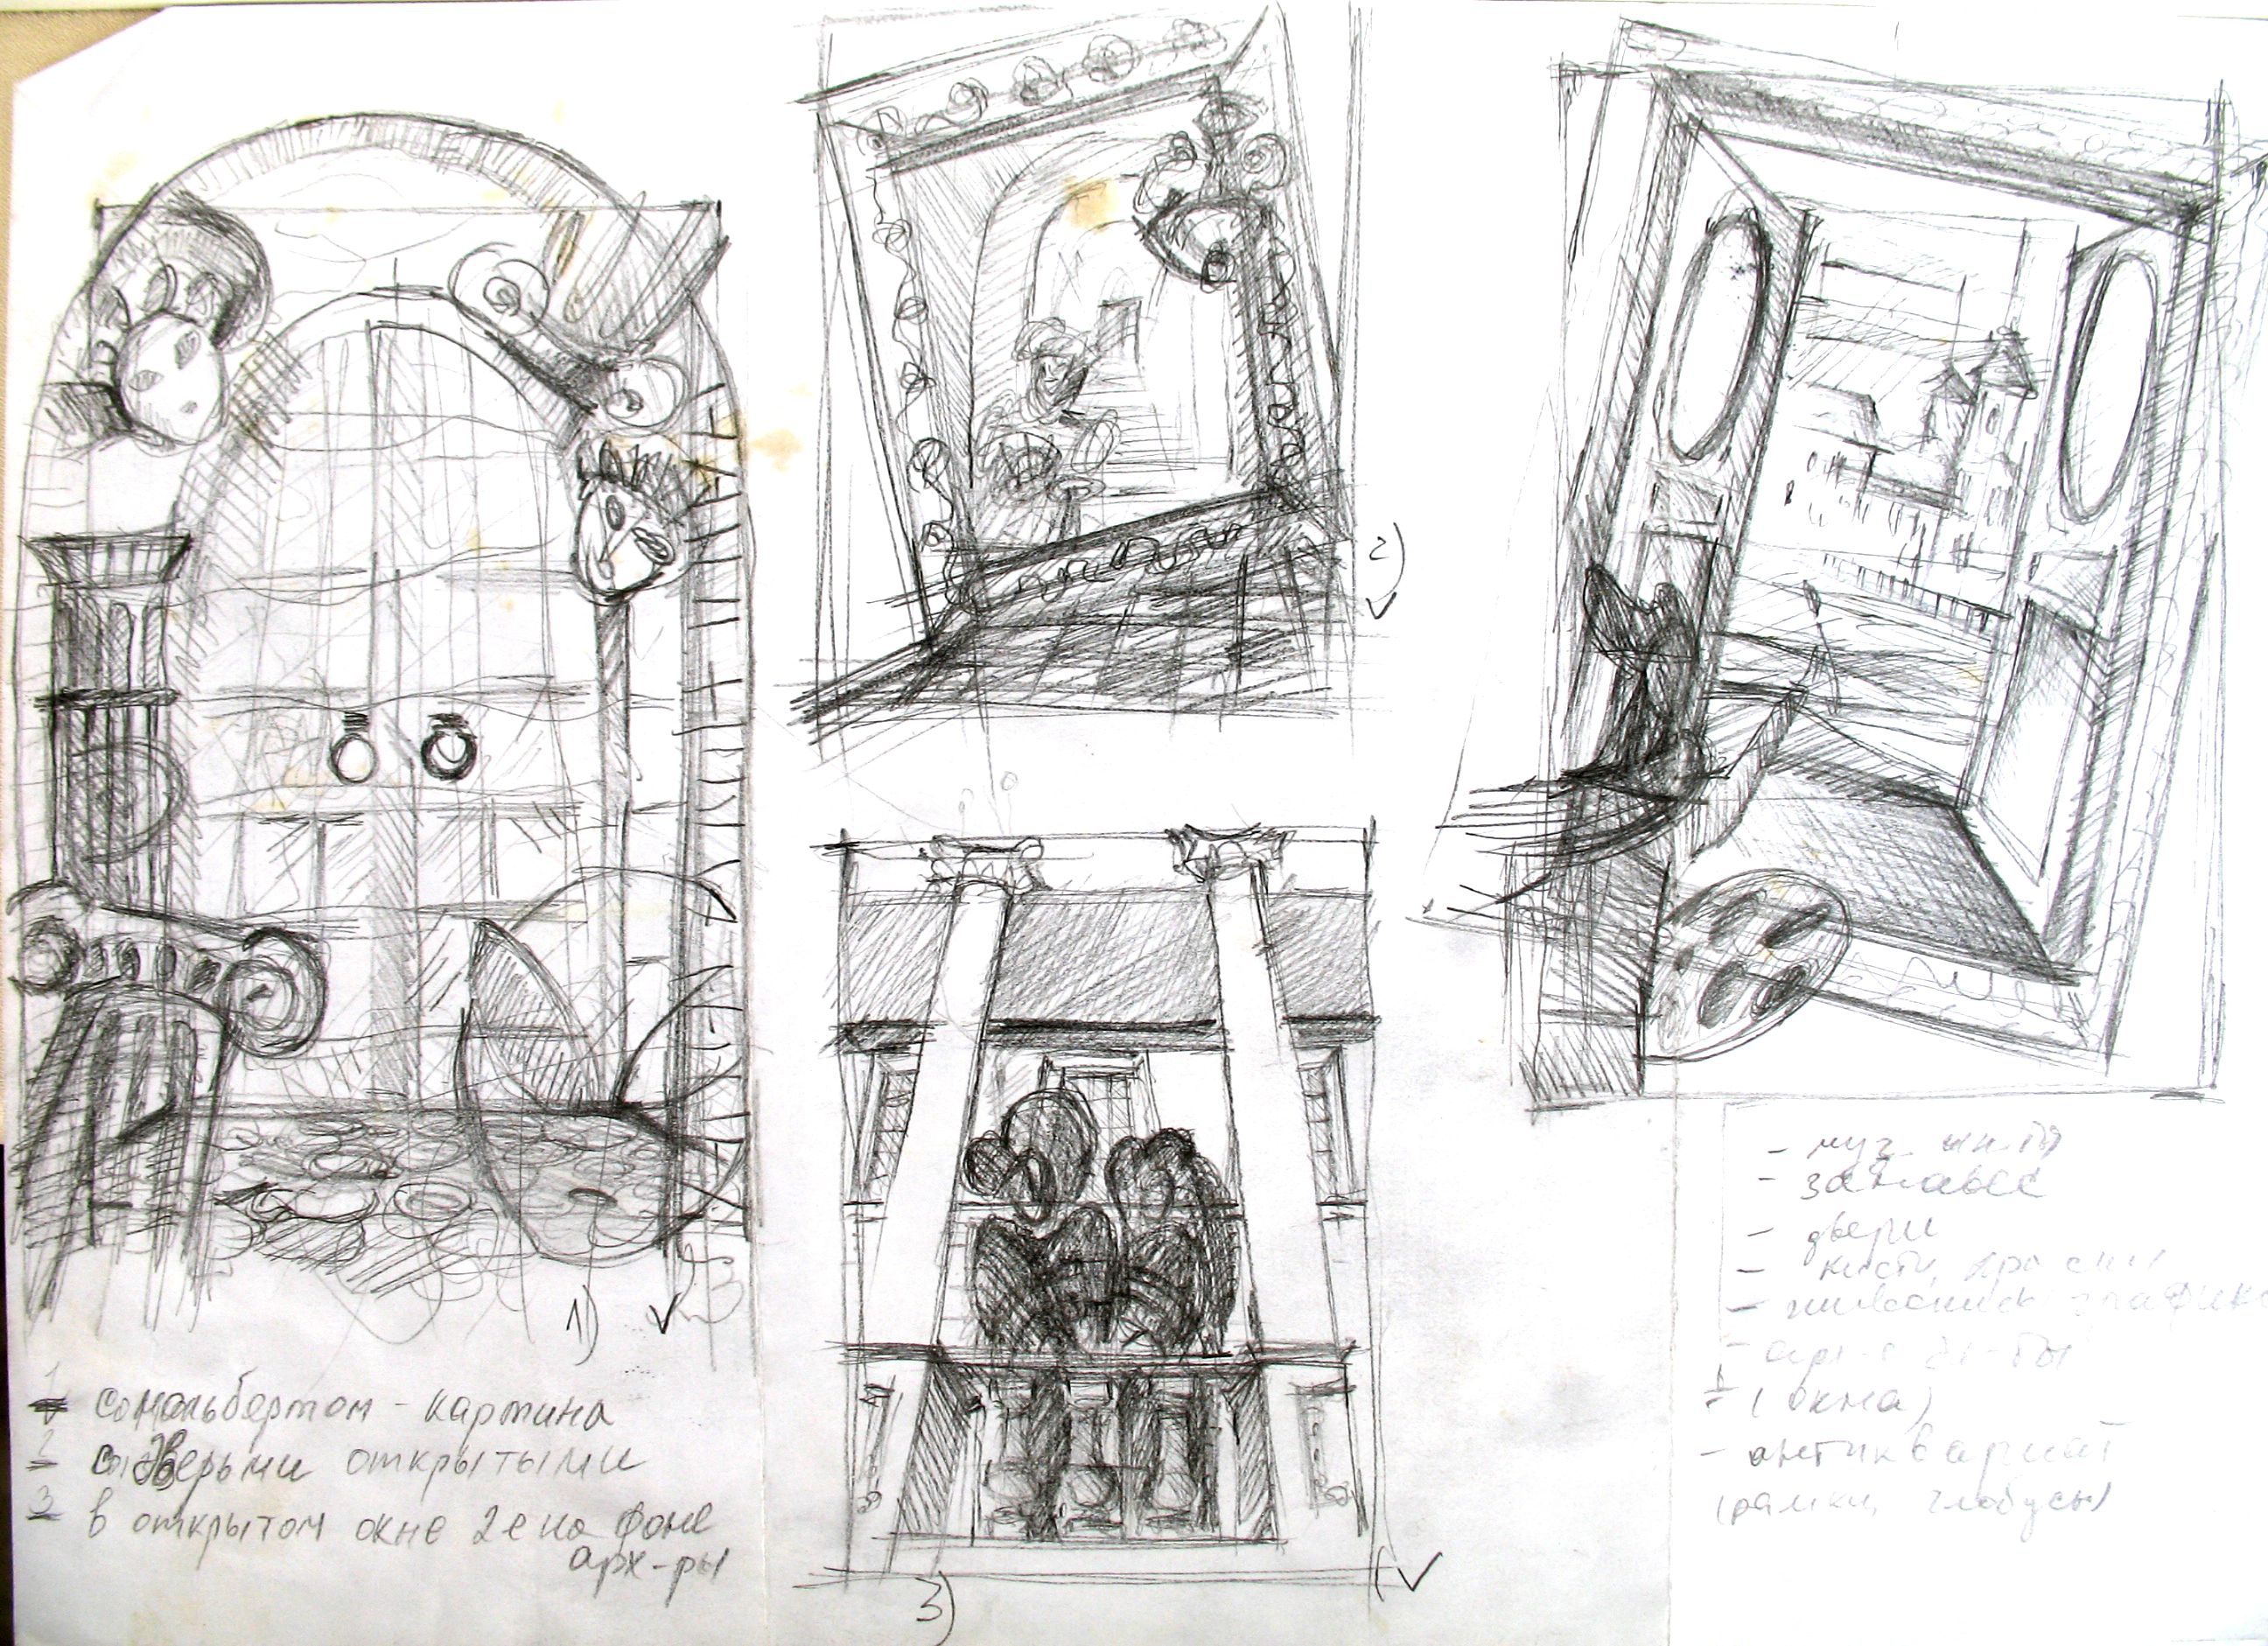 medium resolution of sketches for art collages for puppet theater sketches sketching pencil painted drawing 3handdrawing theater